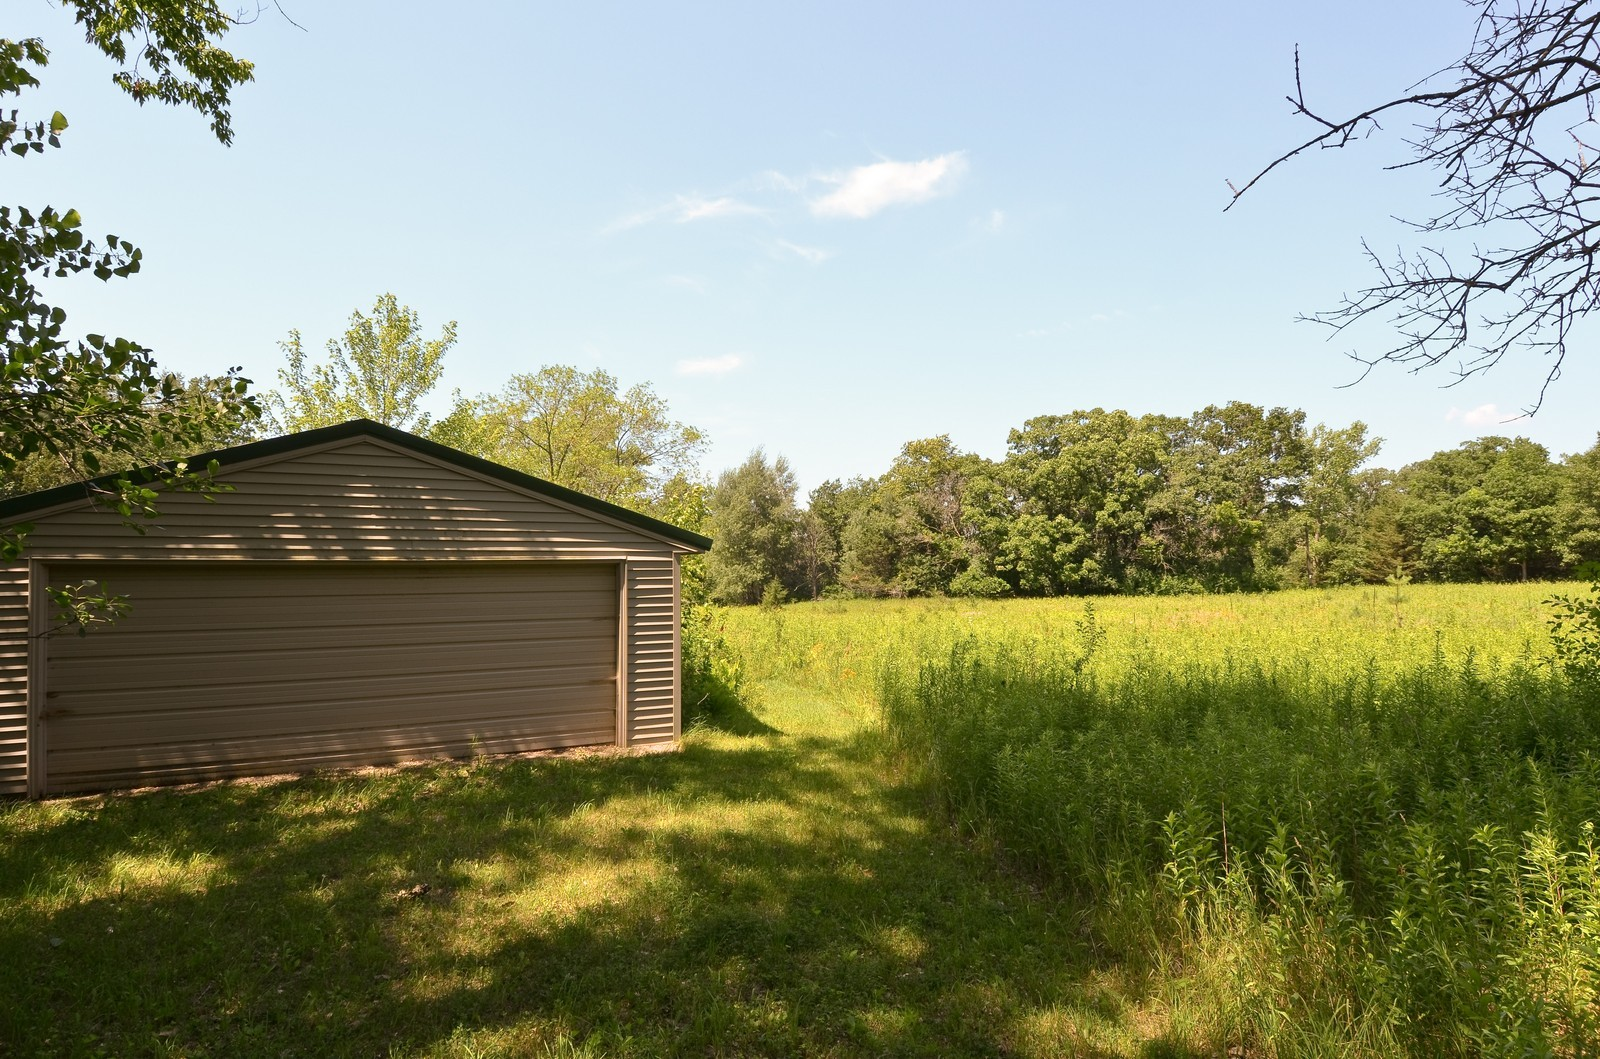 Real Estate Photography - N8885 1250th Street, River Falls, WI, 54022 - Location 7